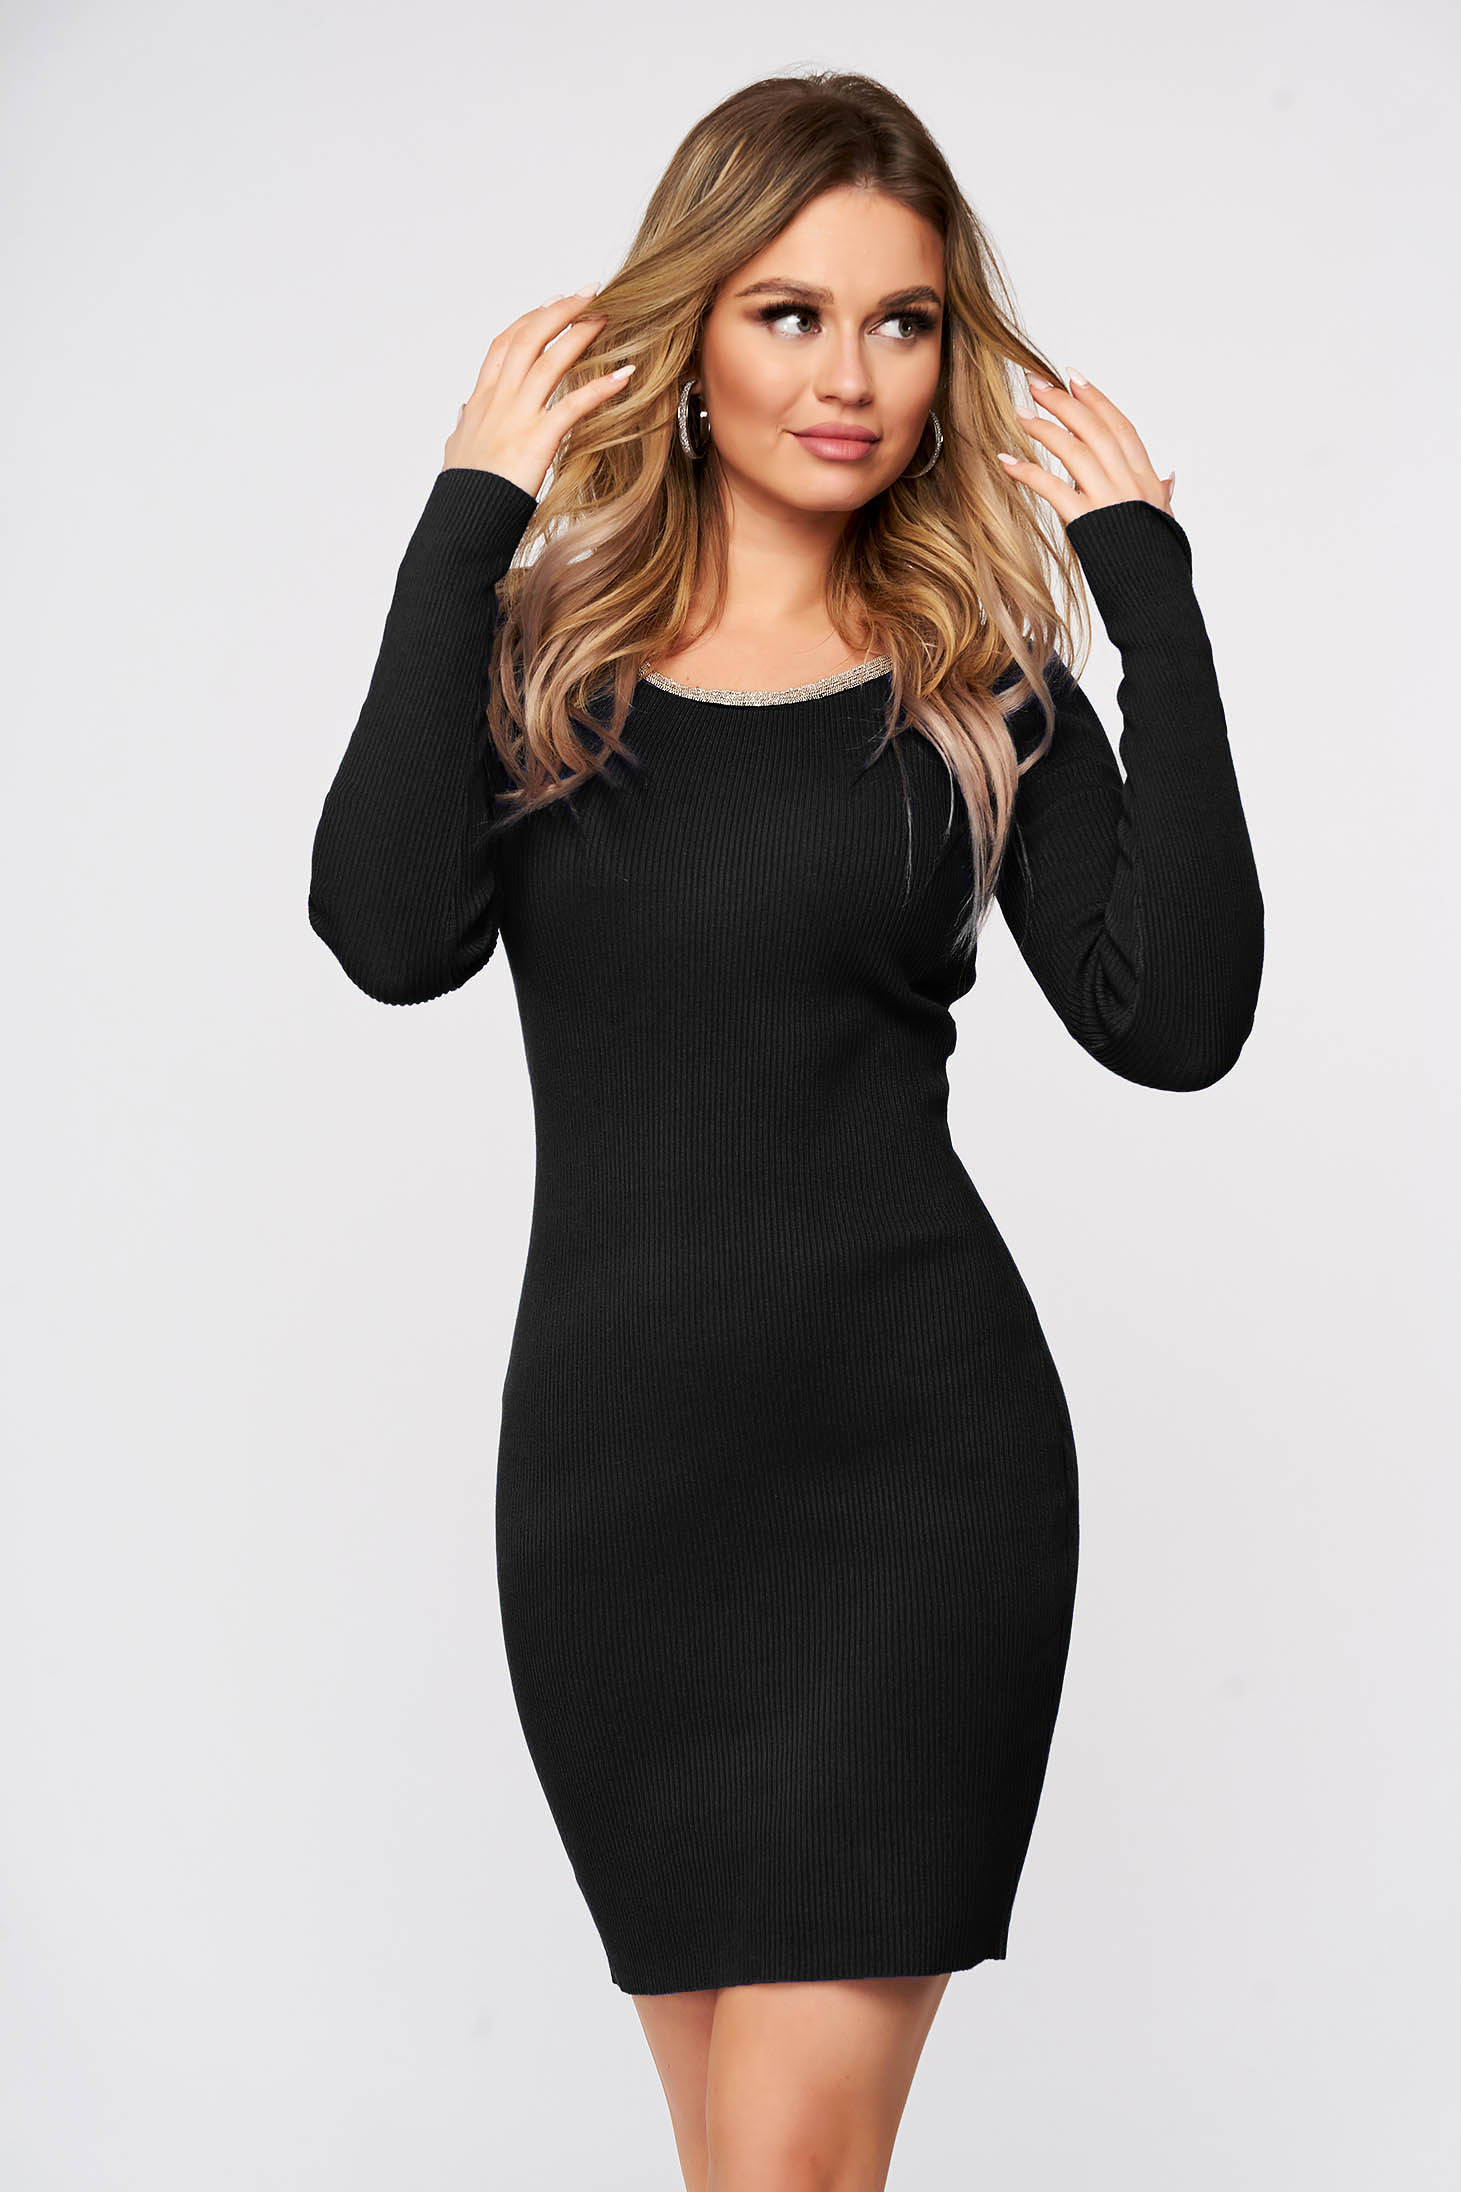 Black dress from elastic fabric from striped fabric knitted with metal accessories neckline